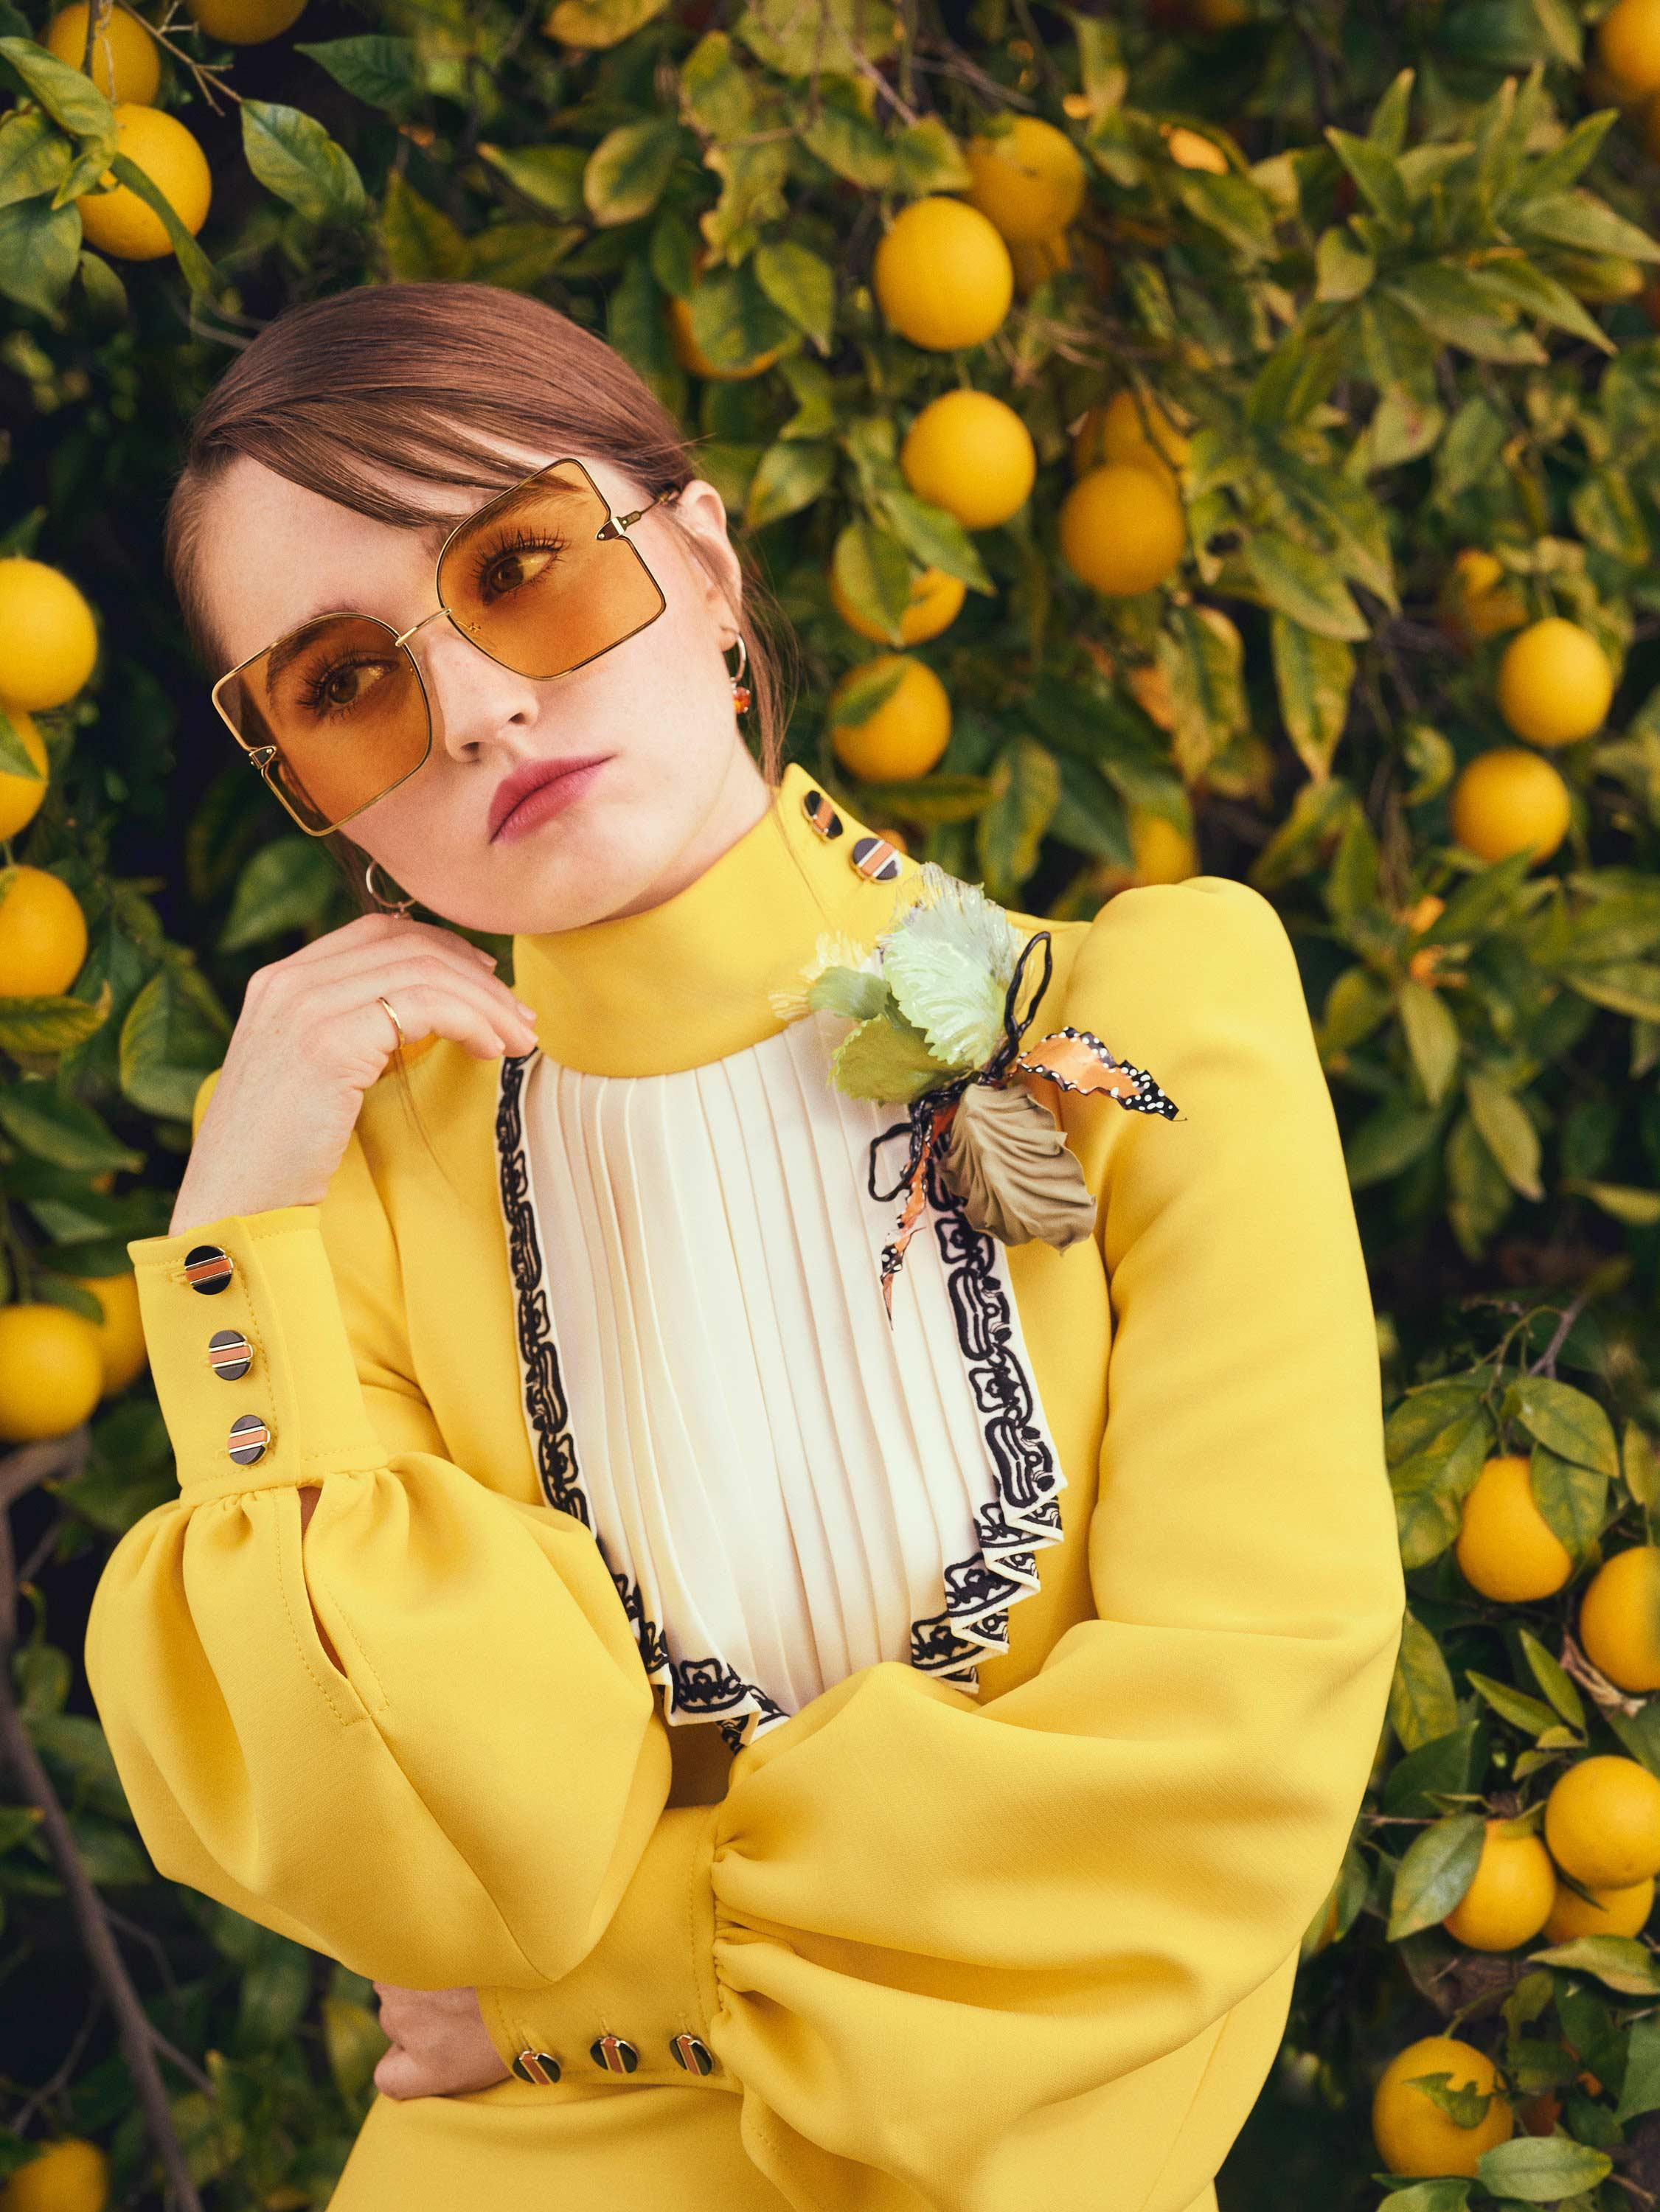 Kaitlyn Dever sports a bright yellow dress with a high collar and a pleated white bib front